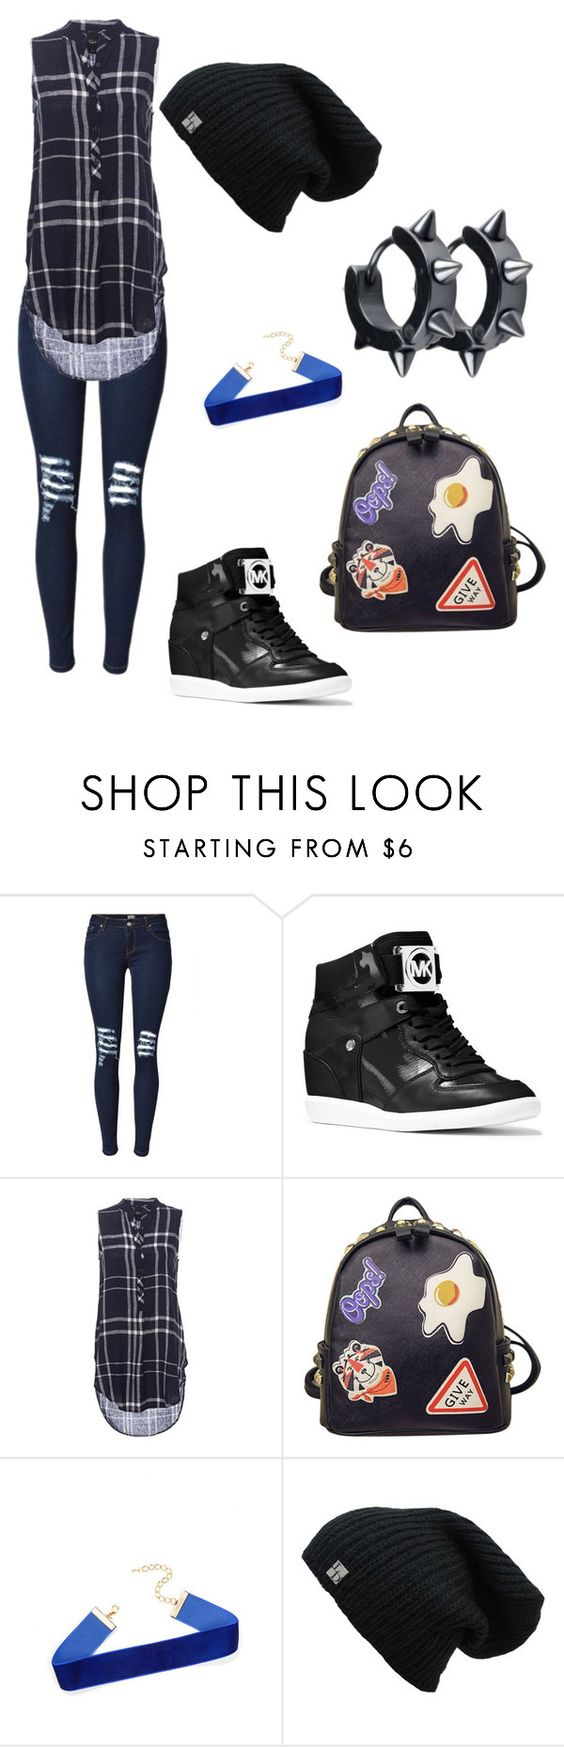 """Untitled #340"" by jenn-m31 ❤ liked on Polyvore featuring MICHAEL Michael Kors and WithChic"